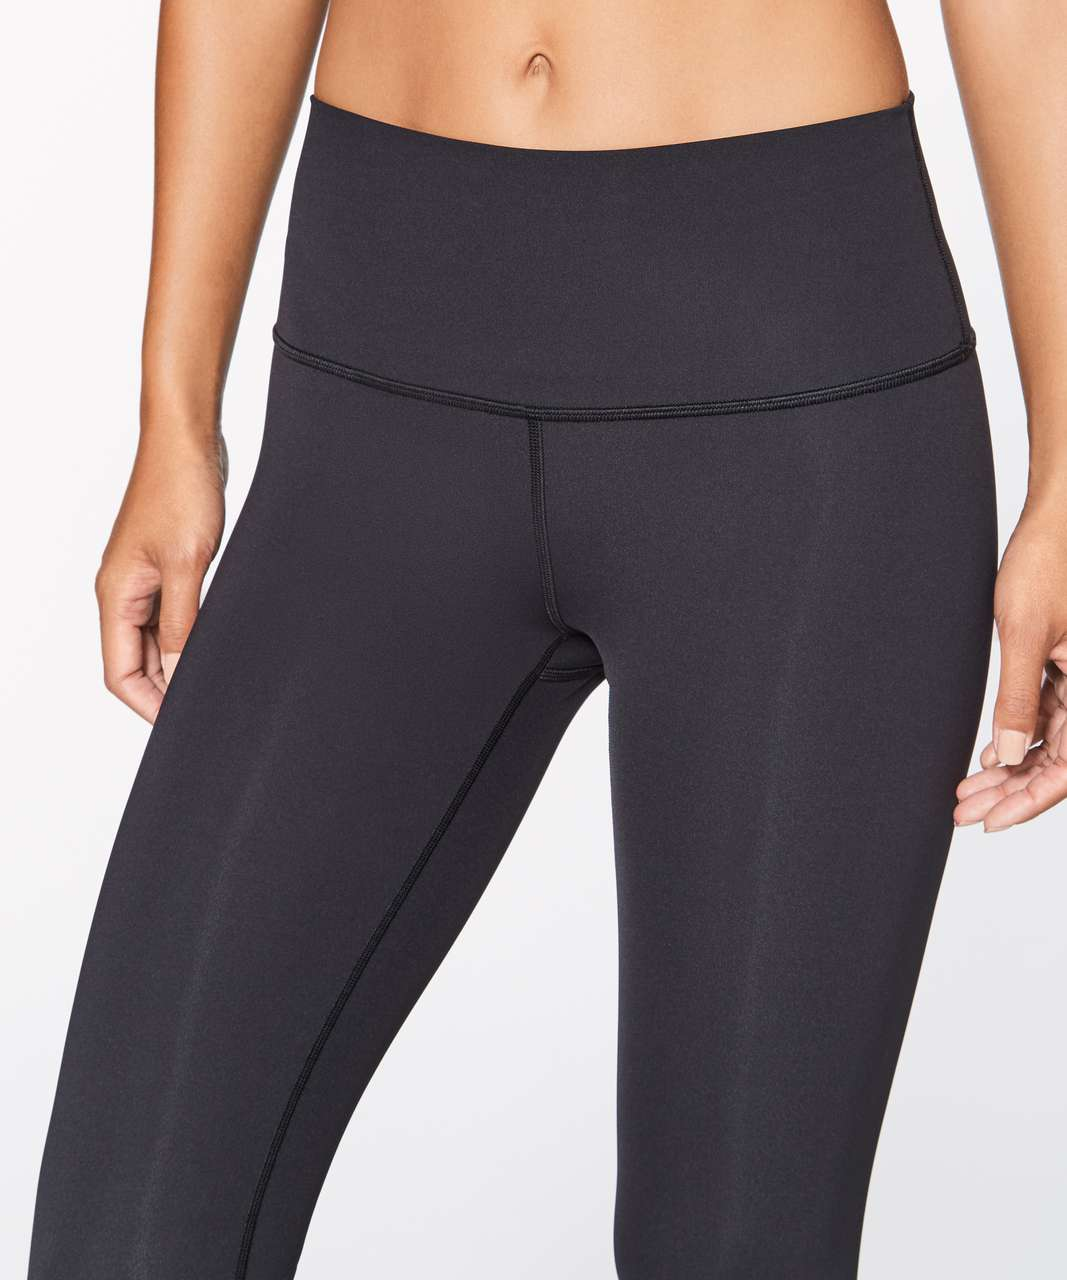 "Lululemon Wunder Under Hi-Rise 7/8 Tight *Full-On Luxtreme 25"" - Black"